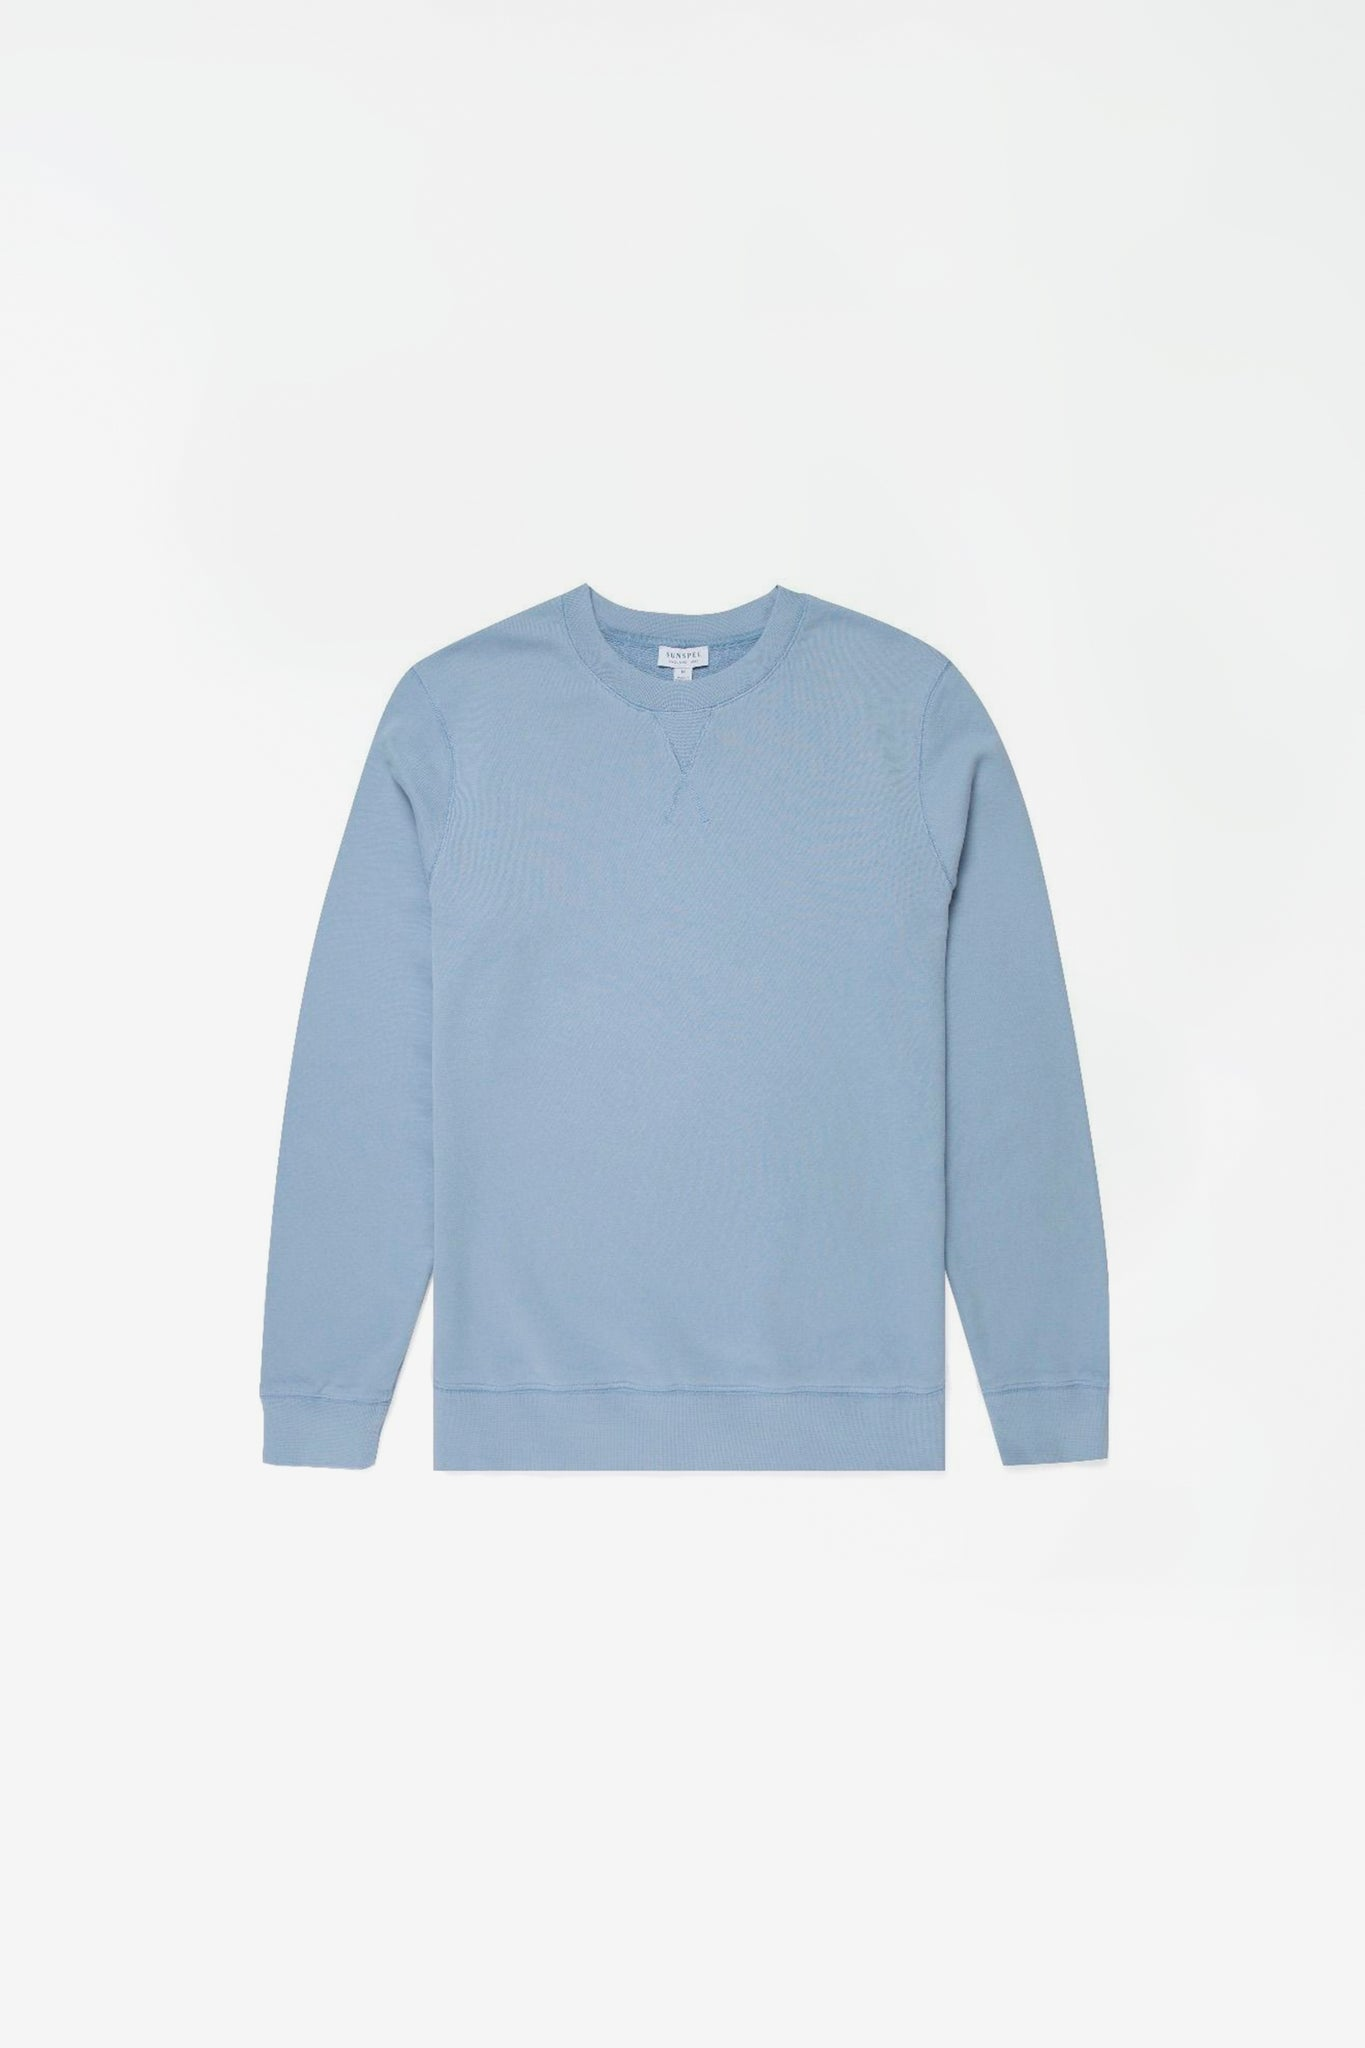 Cotton loopback sweatshirt washed denim